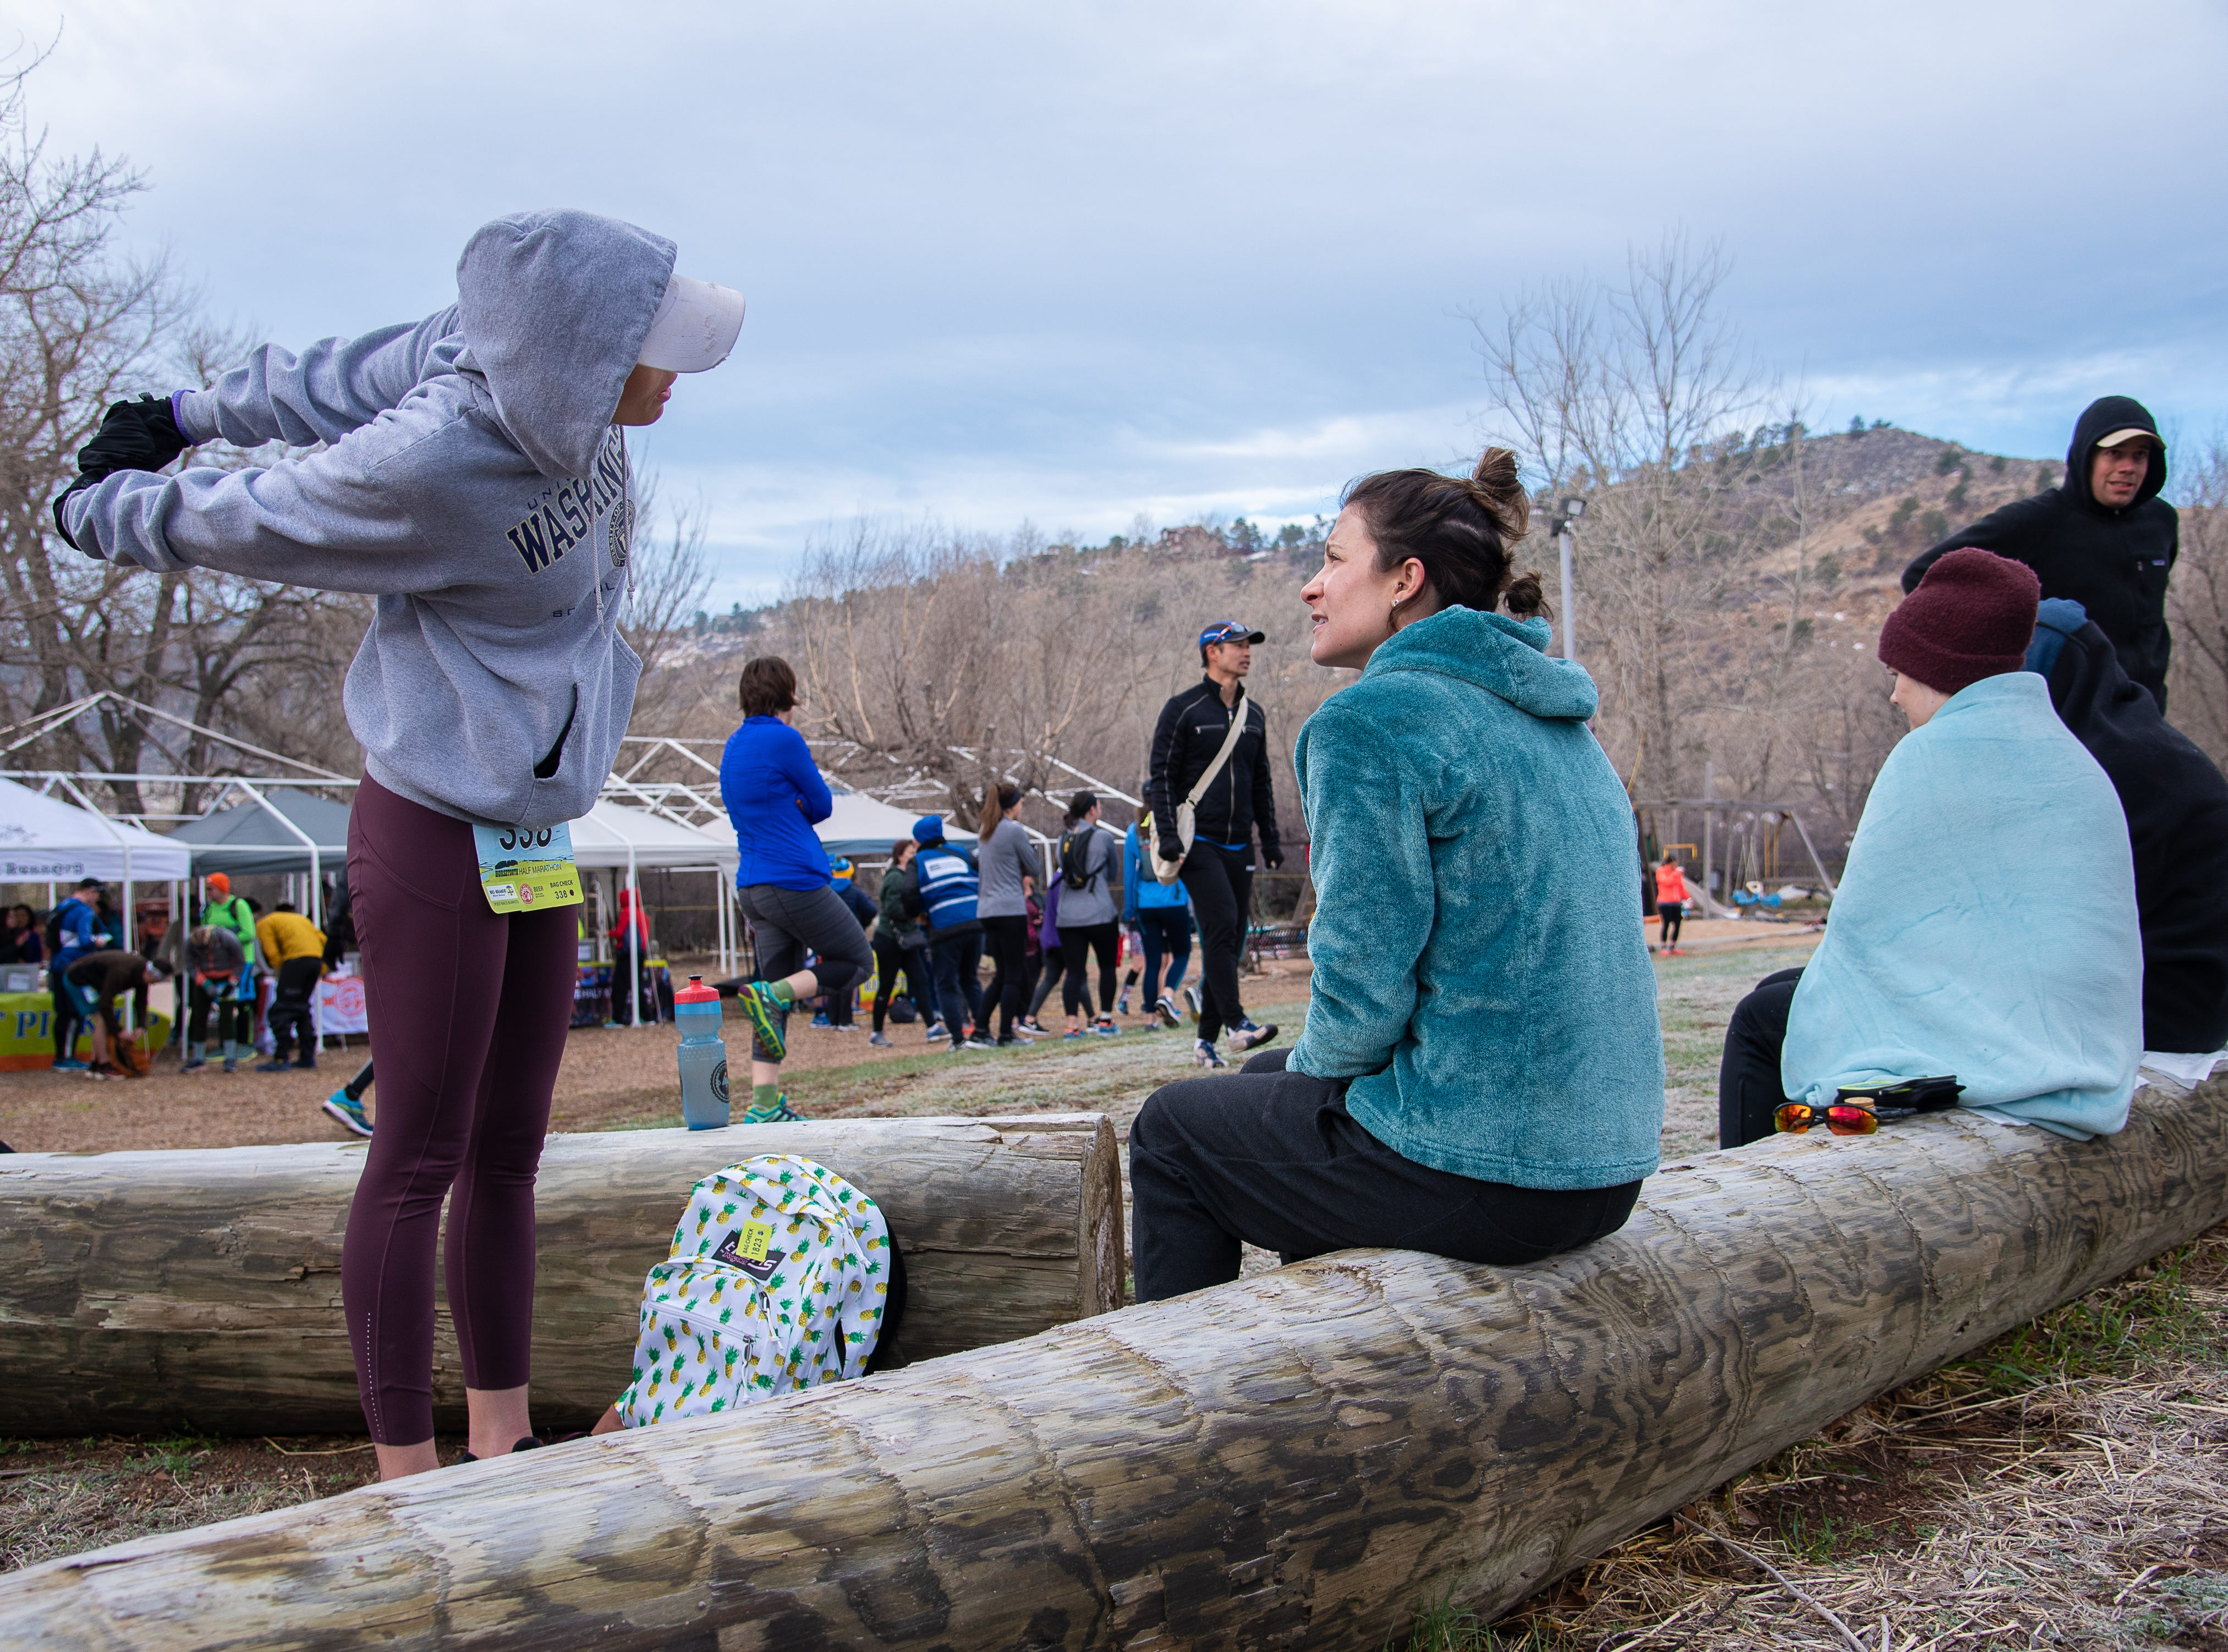 Participant Amanda Smylie limbers up as she speaks with Allie Oban before the start of the Horsetooth Half Marathon on Sunday, April 14, 2019, in Fort Collins, Colol